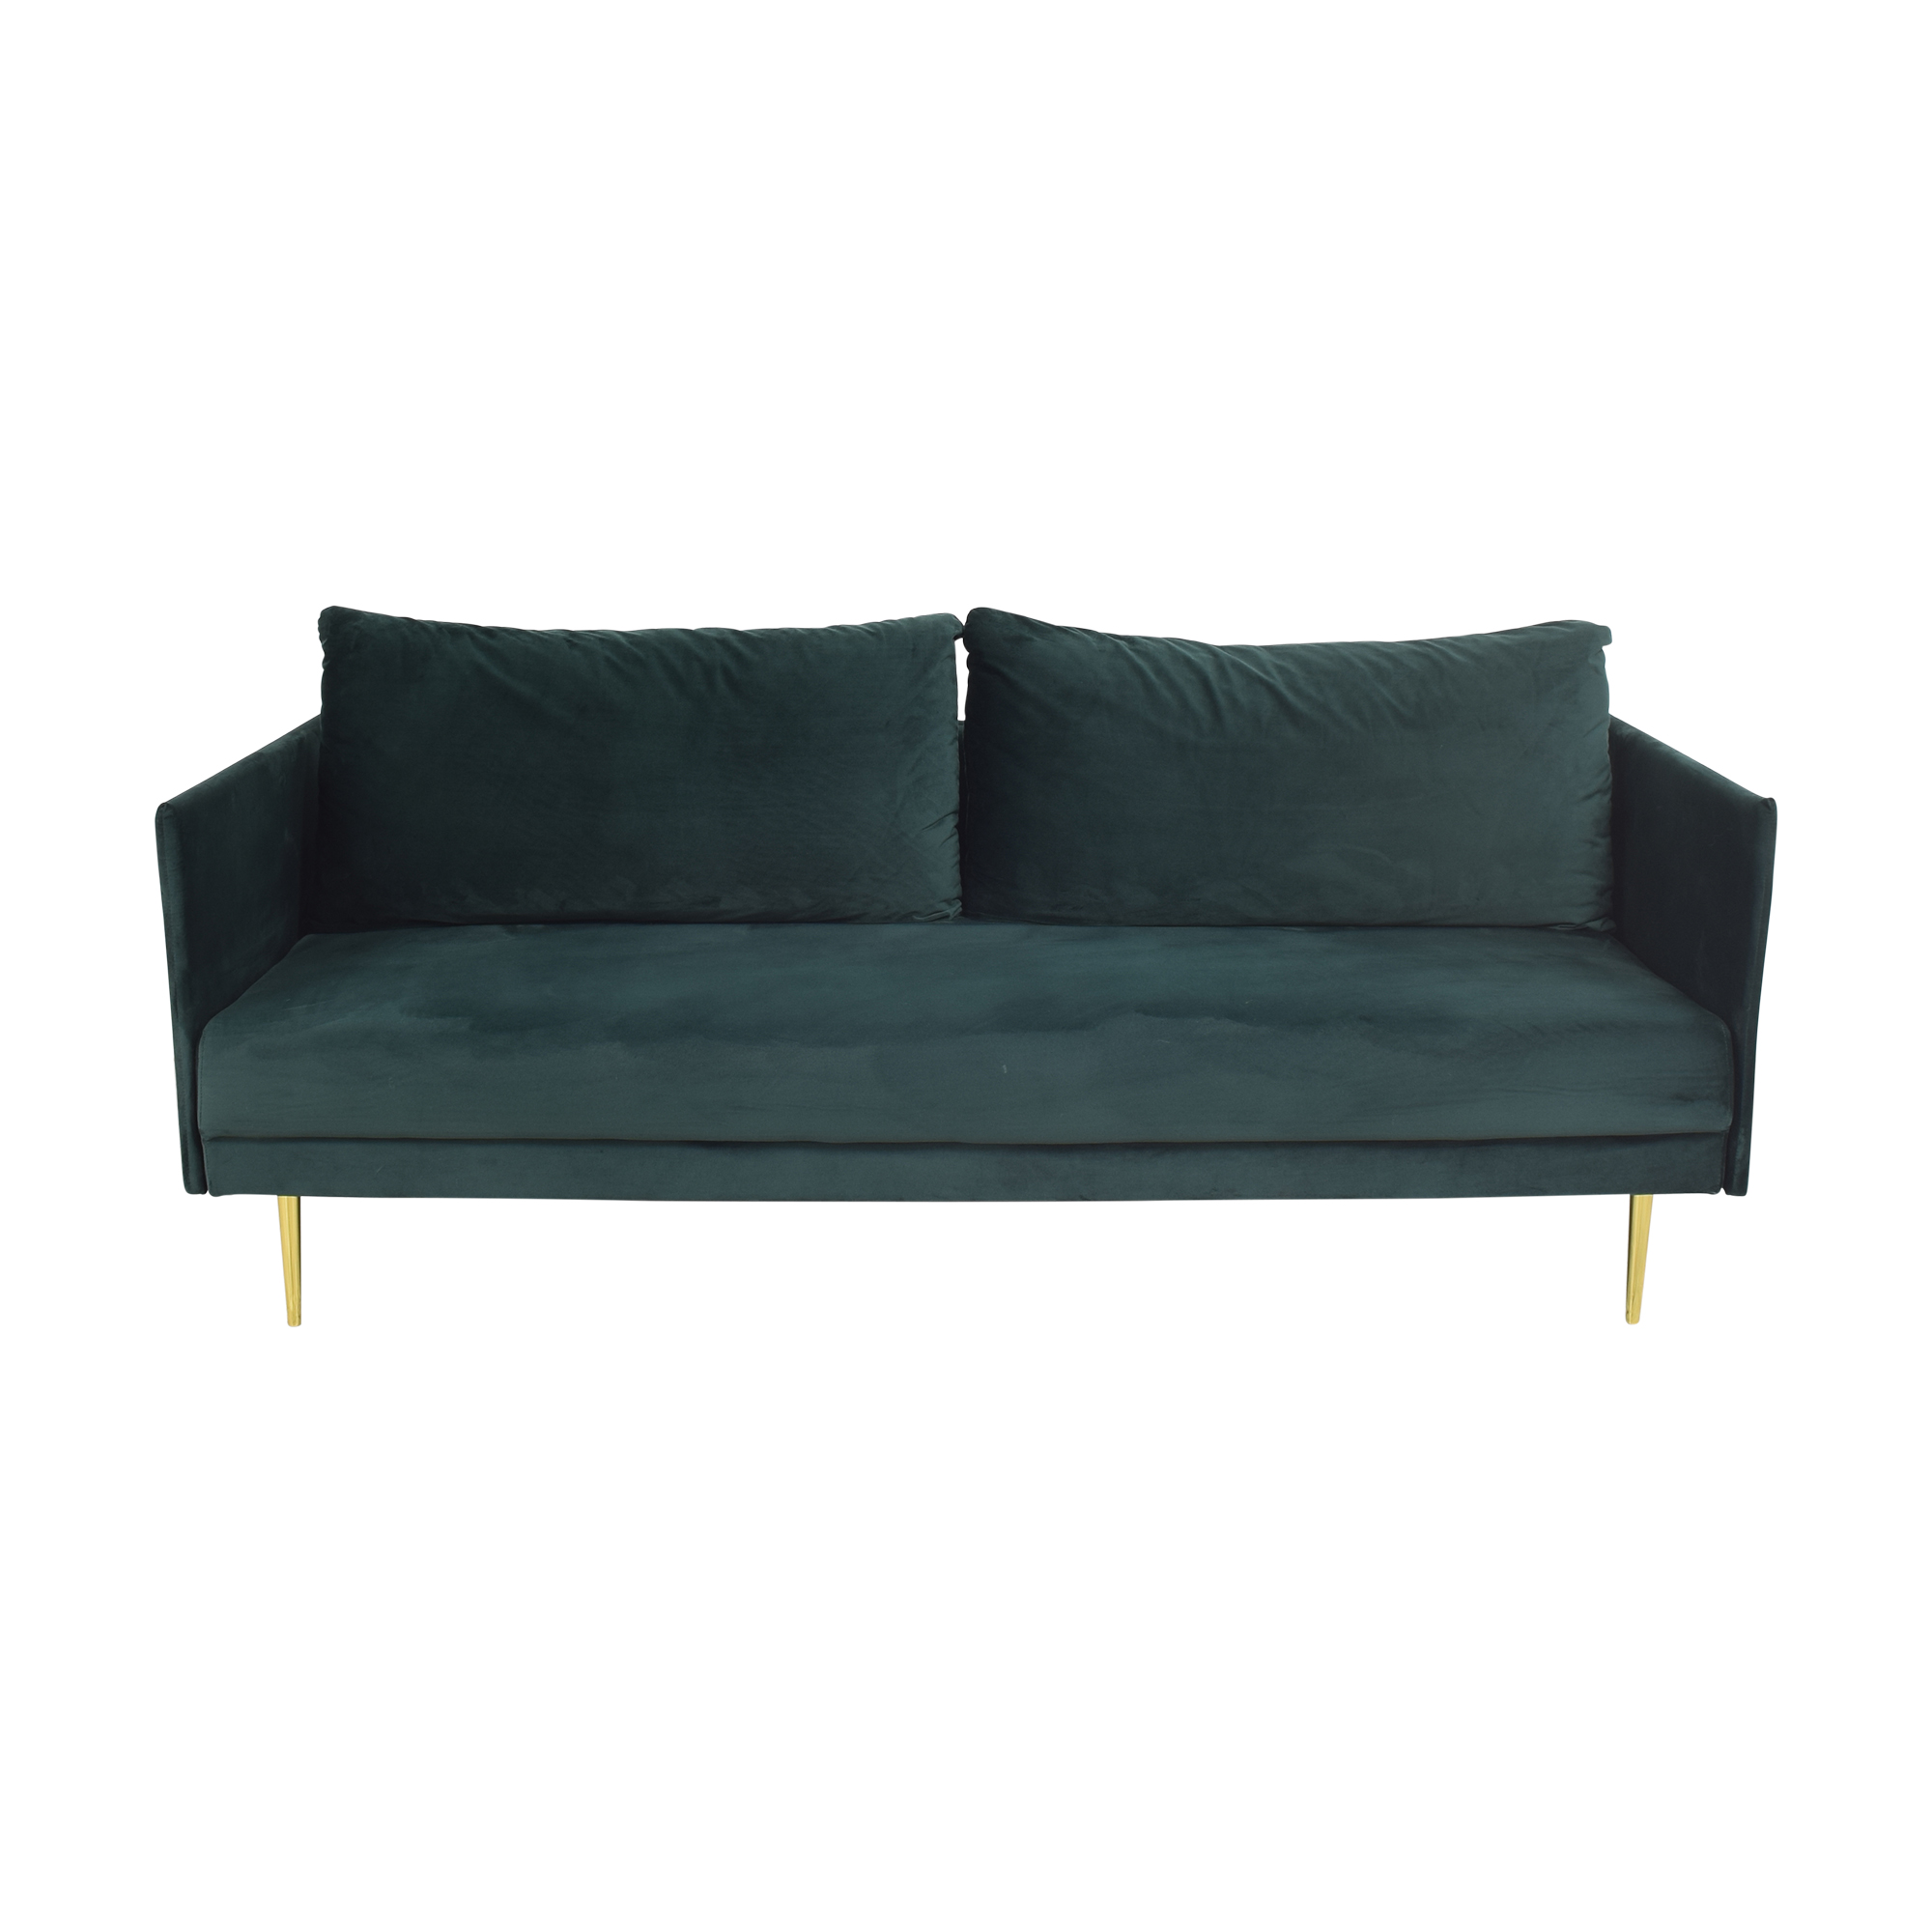 buy  Custom Bench Cushion Convertible Sofa online